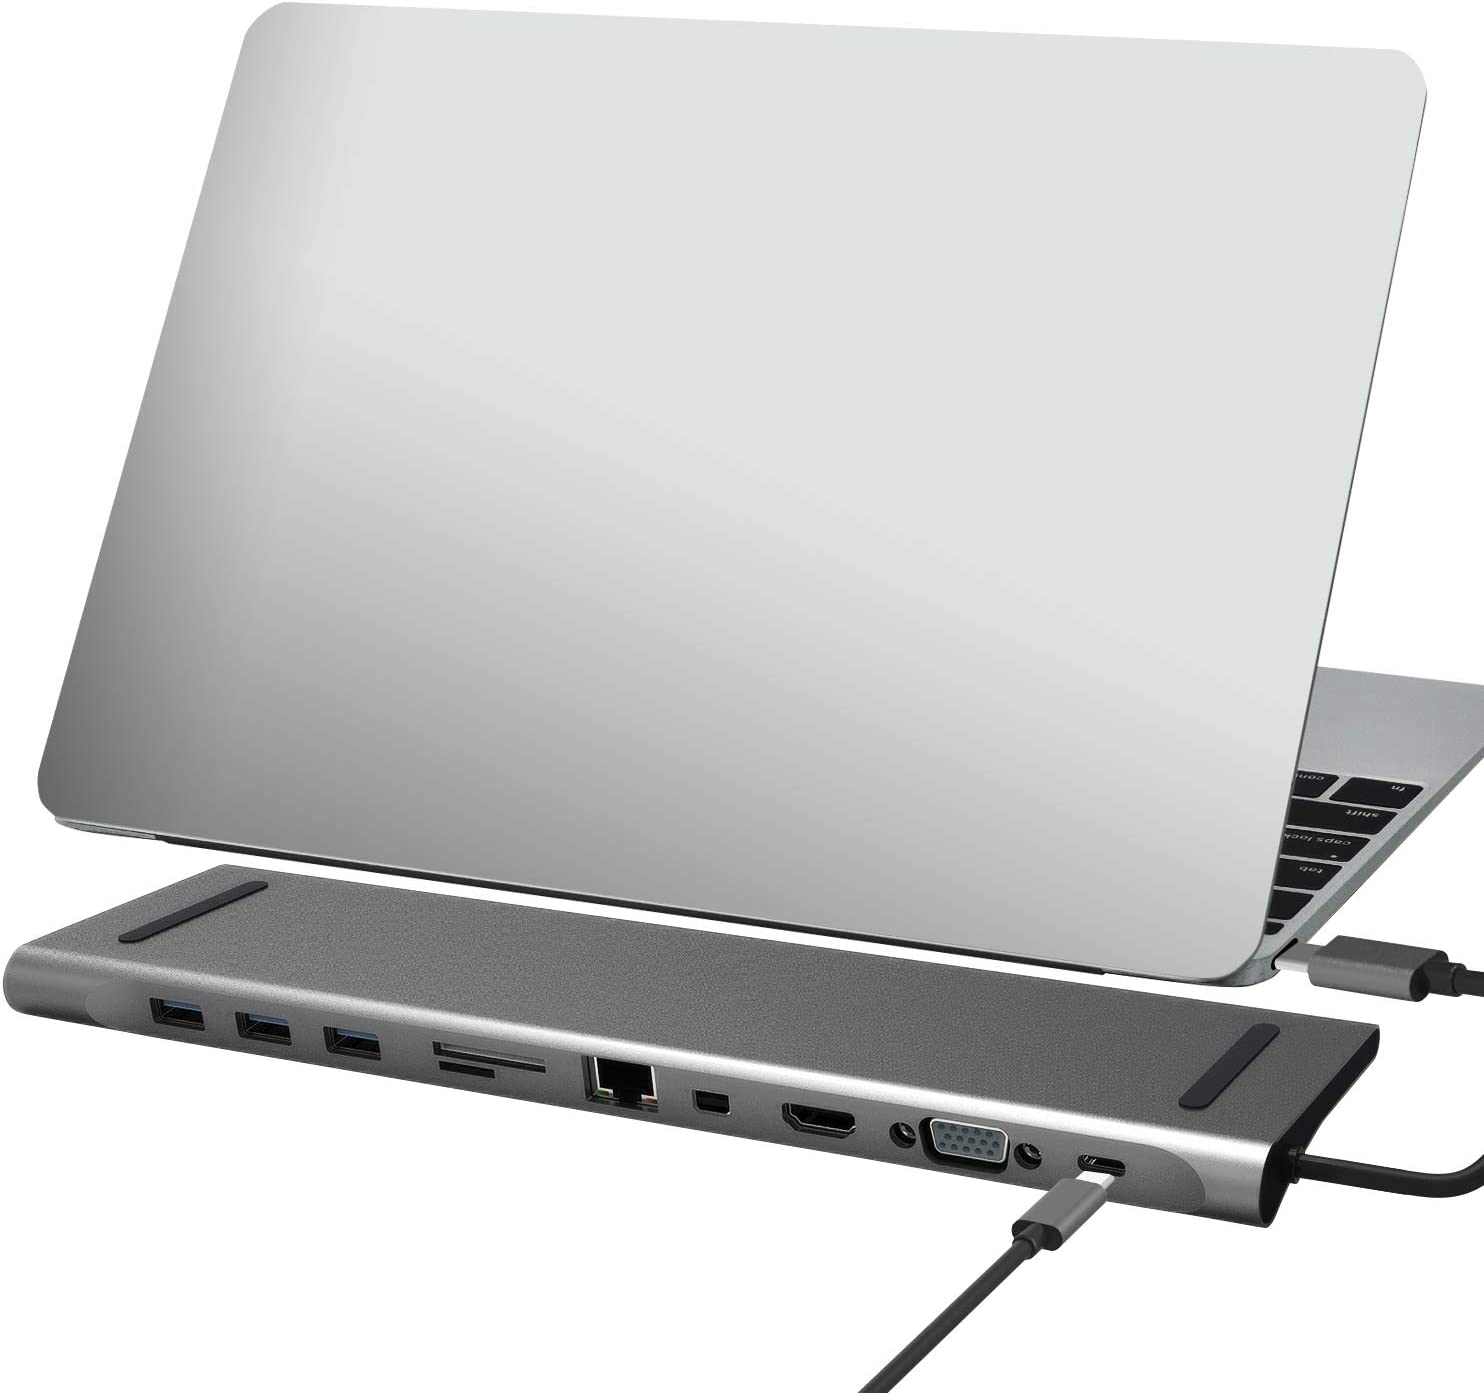 USB C Docking Station - Mydours Type-C Laptop Dock with HDMI,VGA,Mini DP,Gigabit Ethernet,USB C PD2.0,3 USB3.0 Port,SD/TF Card Reader and Audio for MacBook Pro 2016 2017 2018 Chromebook Pixel and more